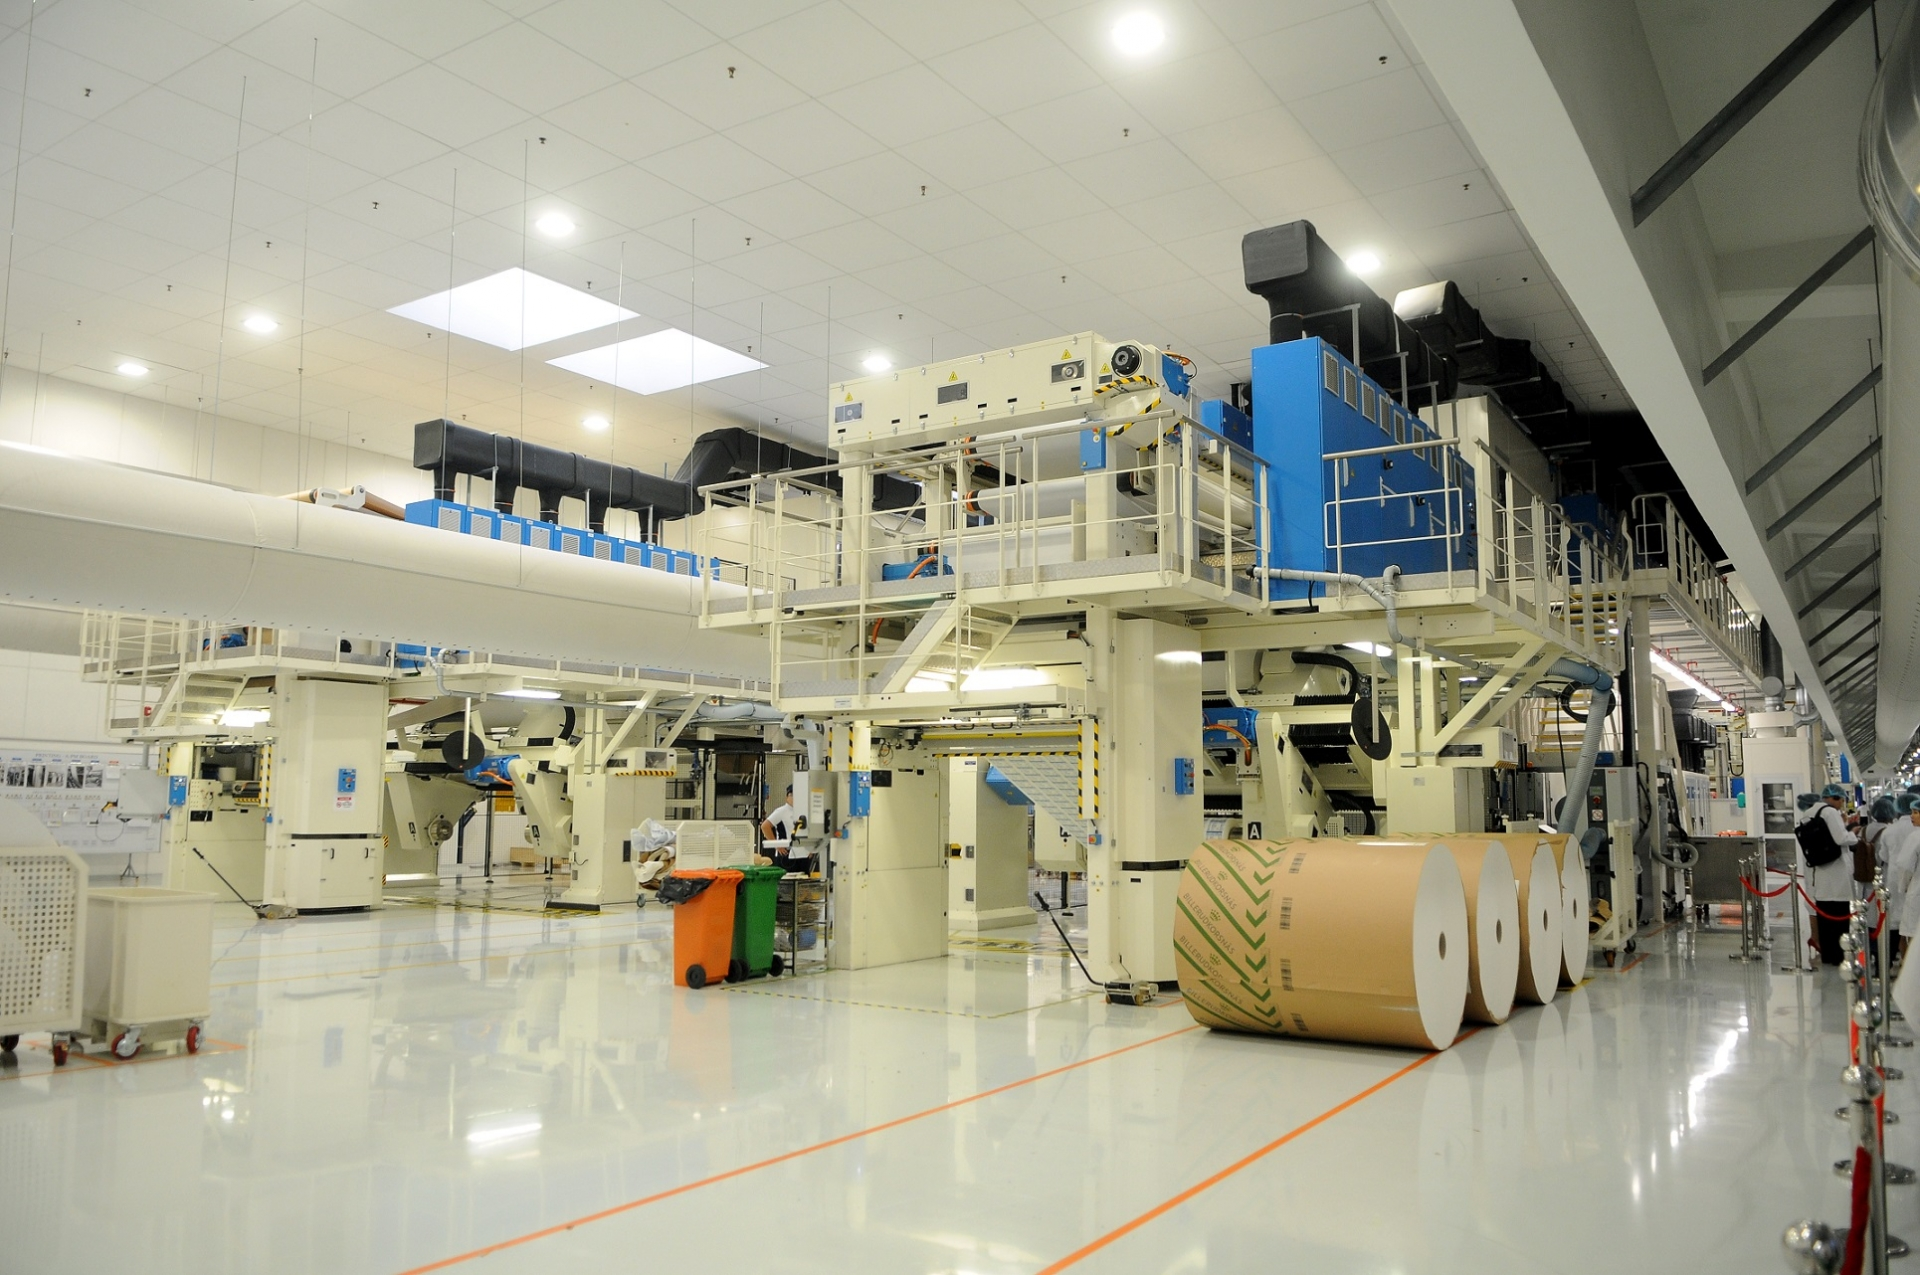 tetra pak expands investment in confidence of vietnams strong economic rebound post pandemic